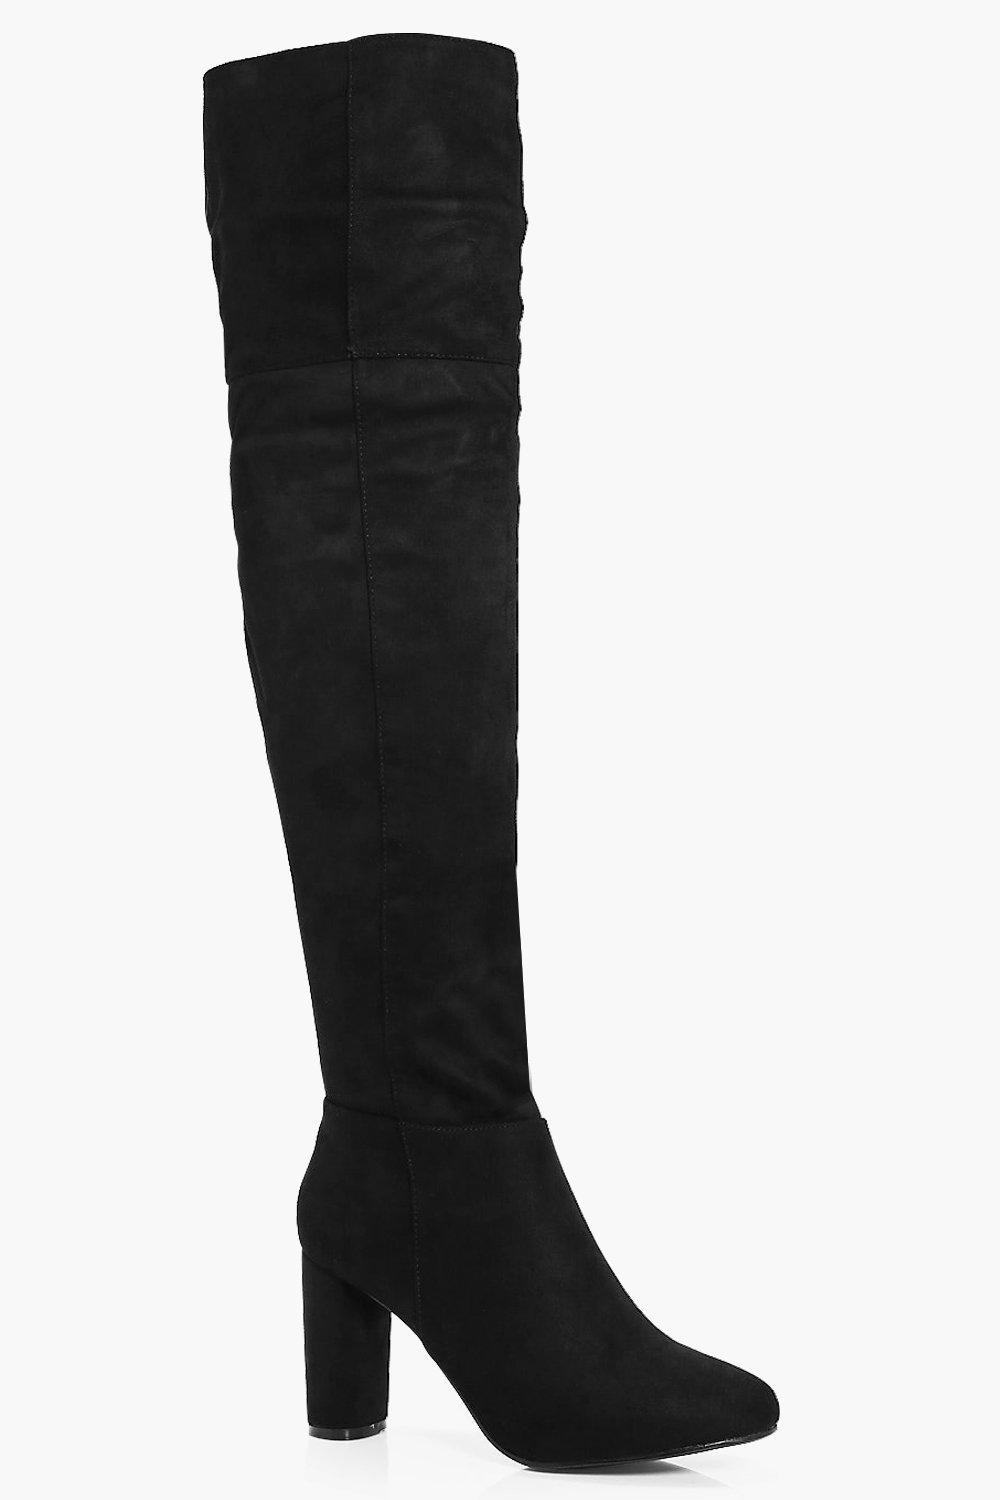 Darcey Block Heel Thigh High Boot